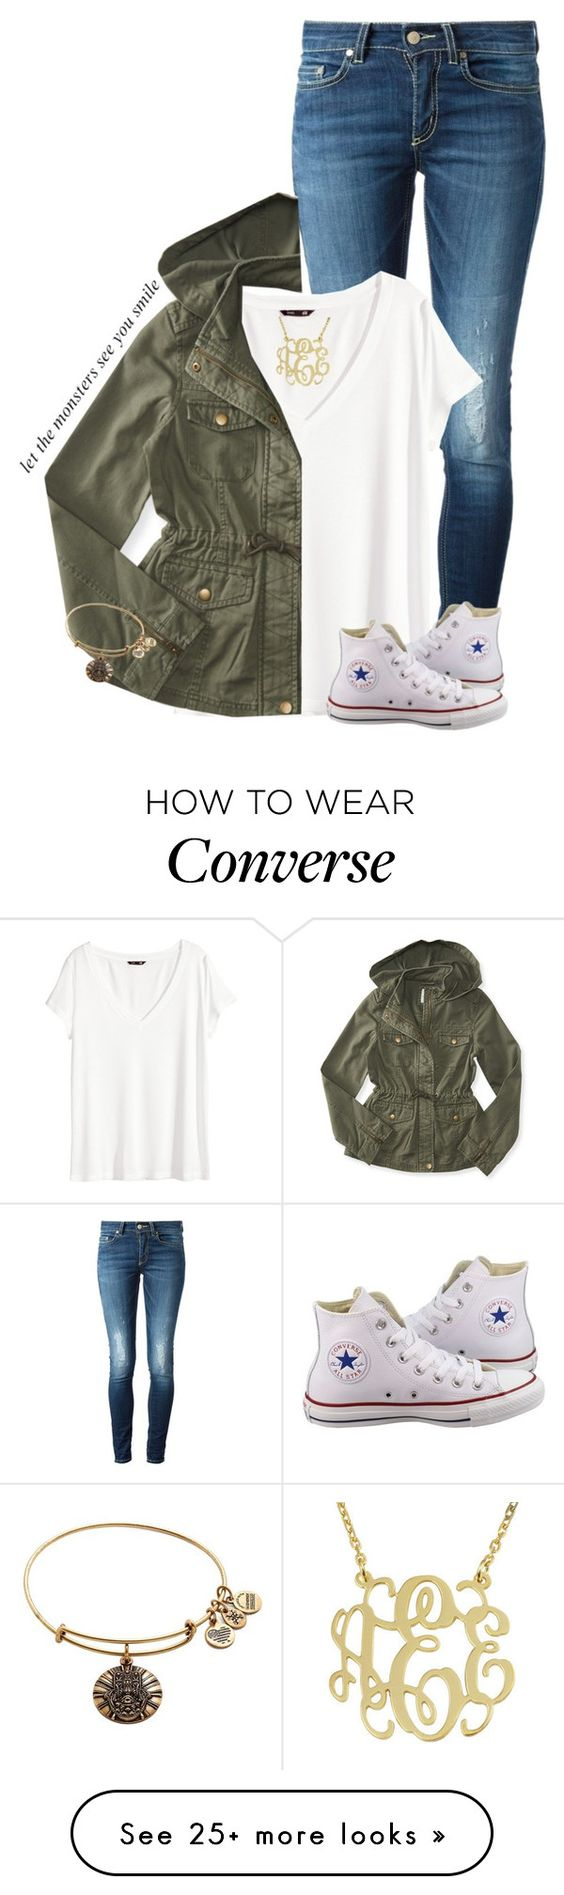 """Let the monsters see you smile"" by sydneymellark on Polyvore featuring Dondup, H&M, Aéropostale, Converse, Alex and Ani and simplyspring"